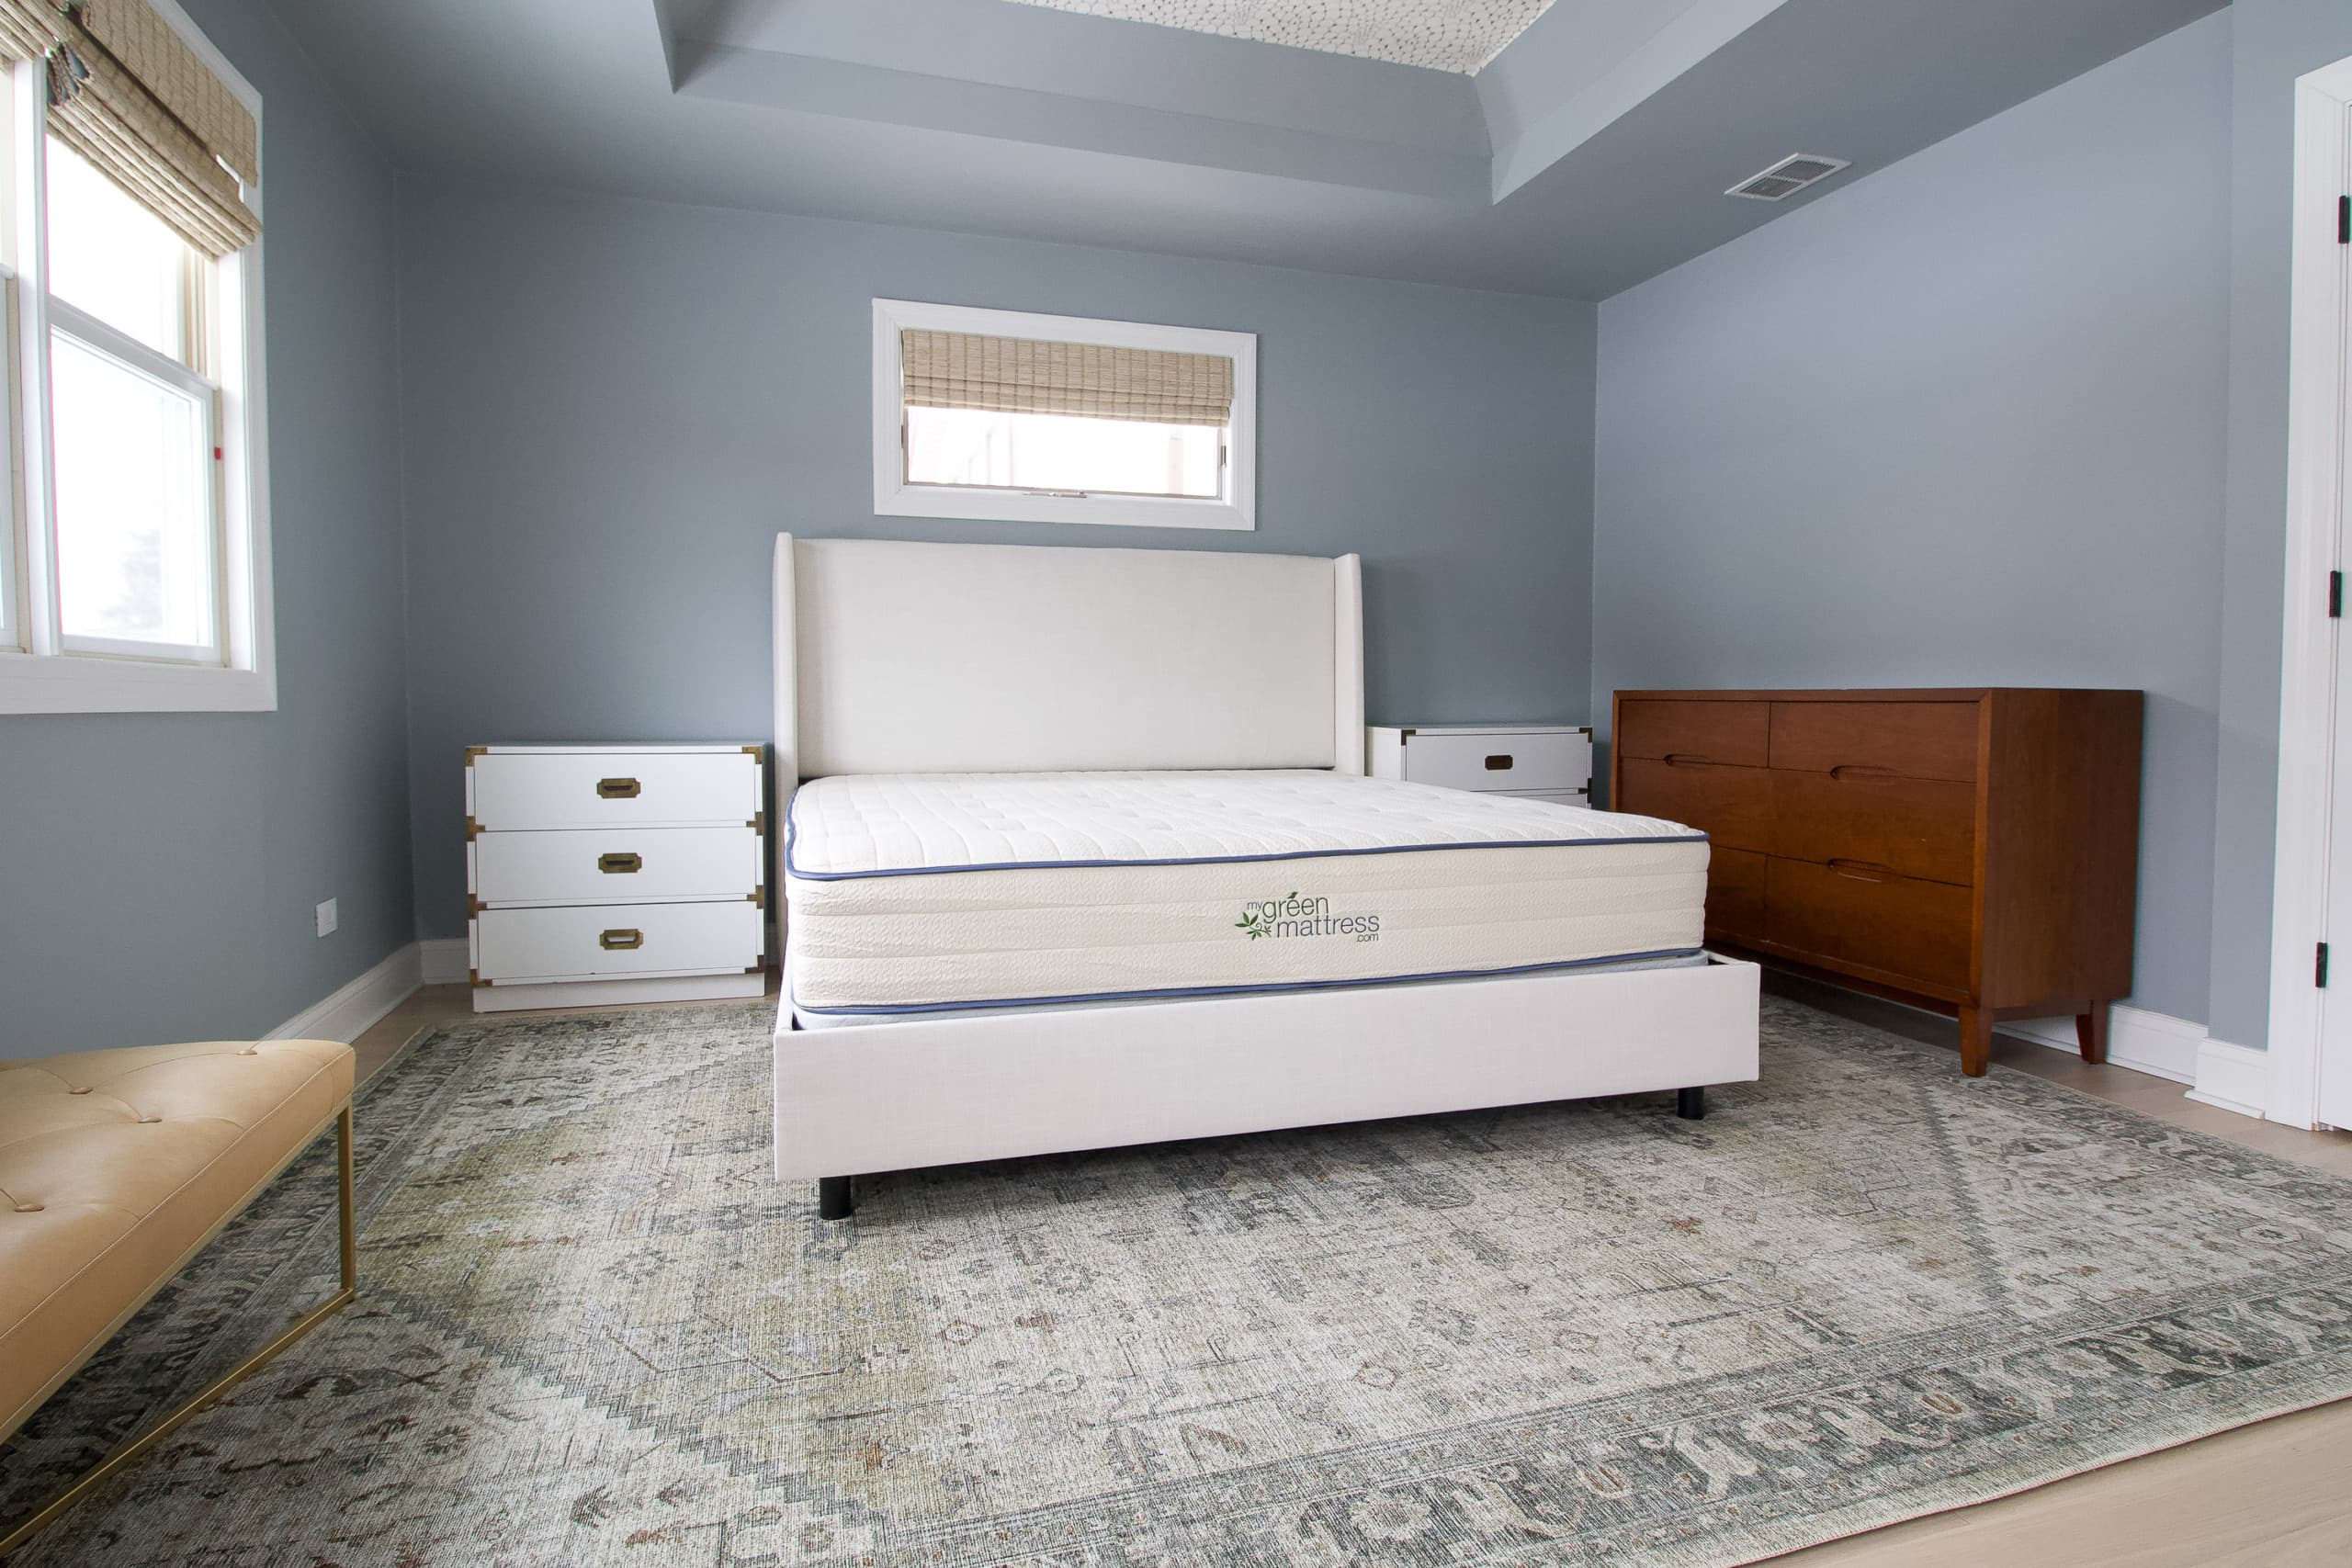 Our new king-sized mattress